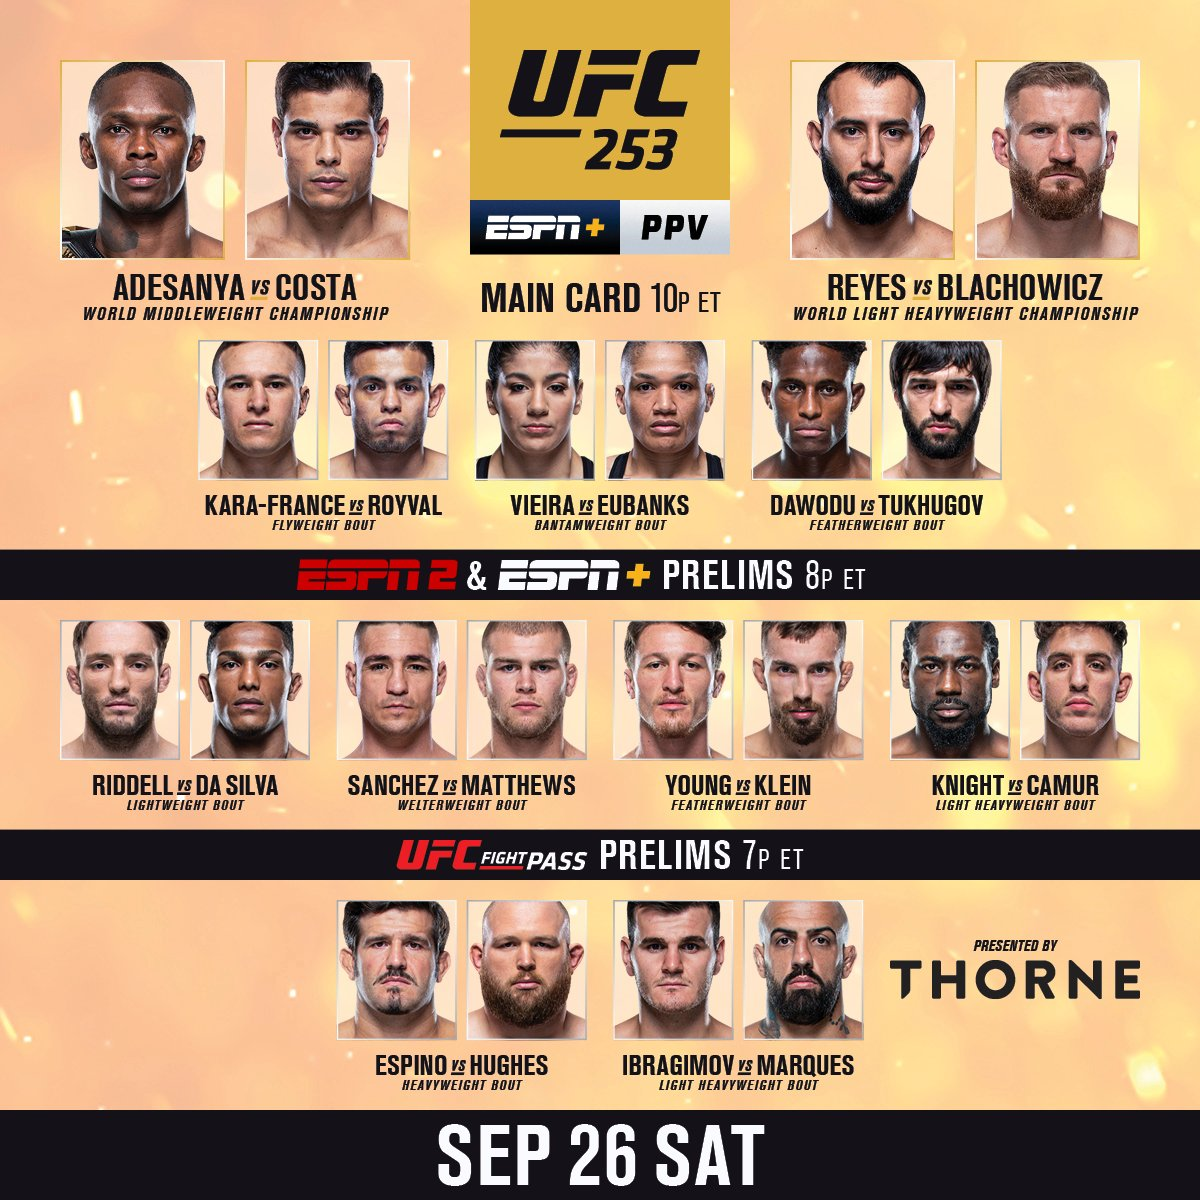 RT b/c IT'S FIGHT DAY 😤  #UFC253 goes down tonight from Fight Island - LIVE on #ESPNPlus   [ Get the PPV: https://t.co/X57BGqYE5U - B2YB @Thorne_Research ] https://t.co/1iOTx8kwQa